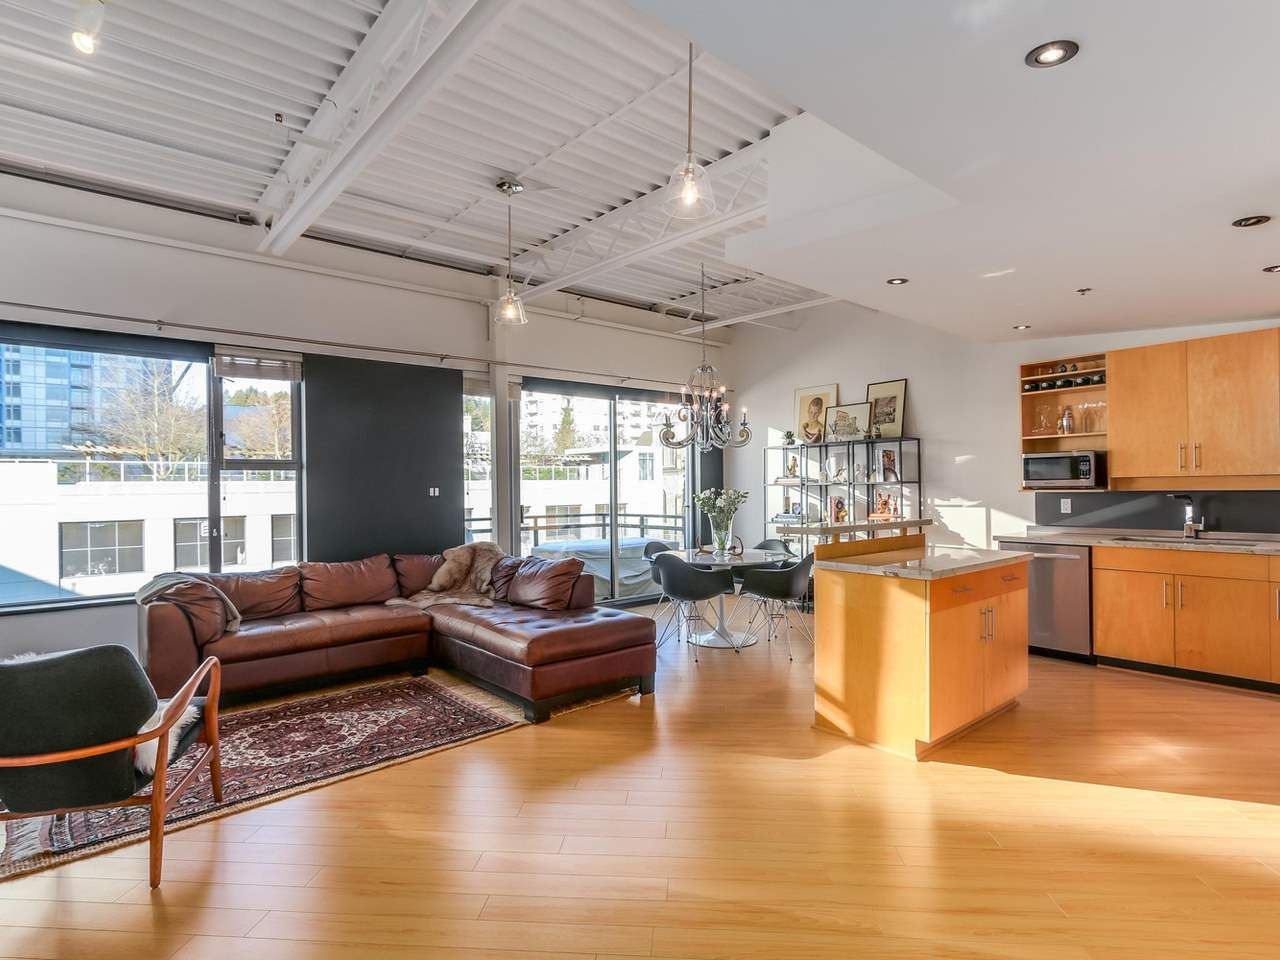 """Main Photo: 511 549 COLUMBIA Street in New Westminster: Downtown NW Condo for sale in """"C2C LOFTS"""" : MLS®# R2129468"""